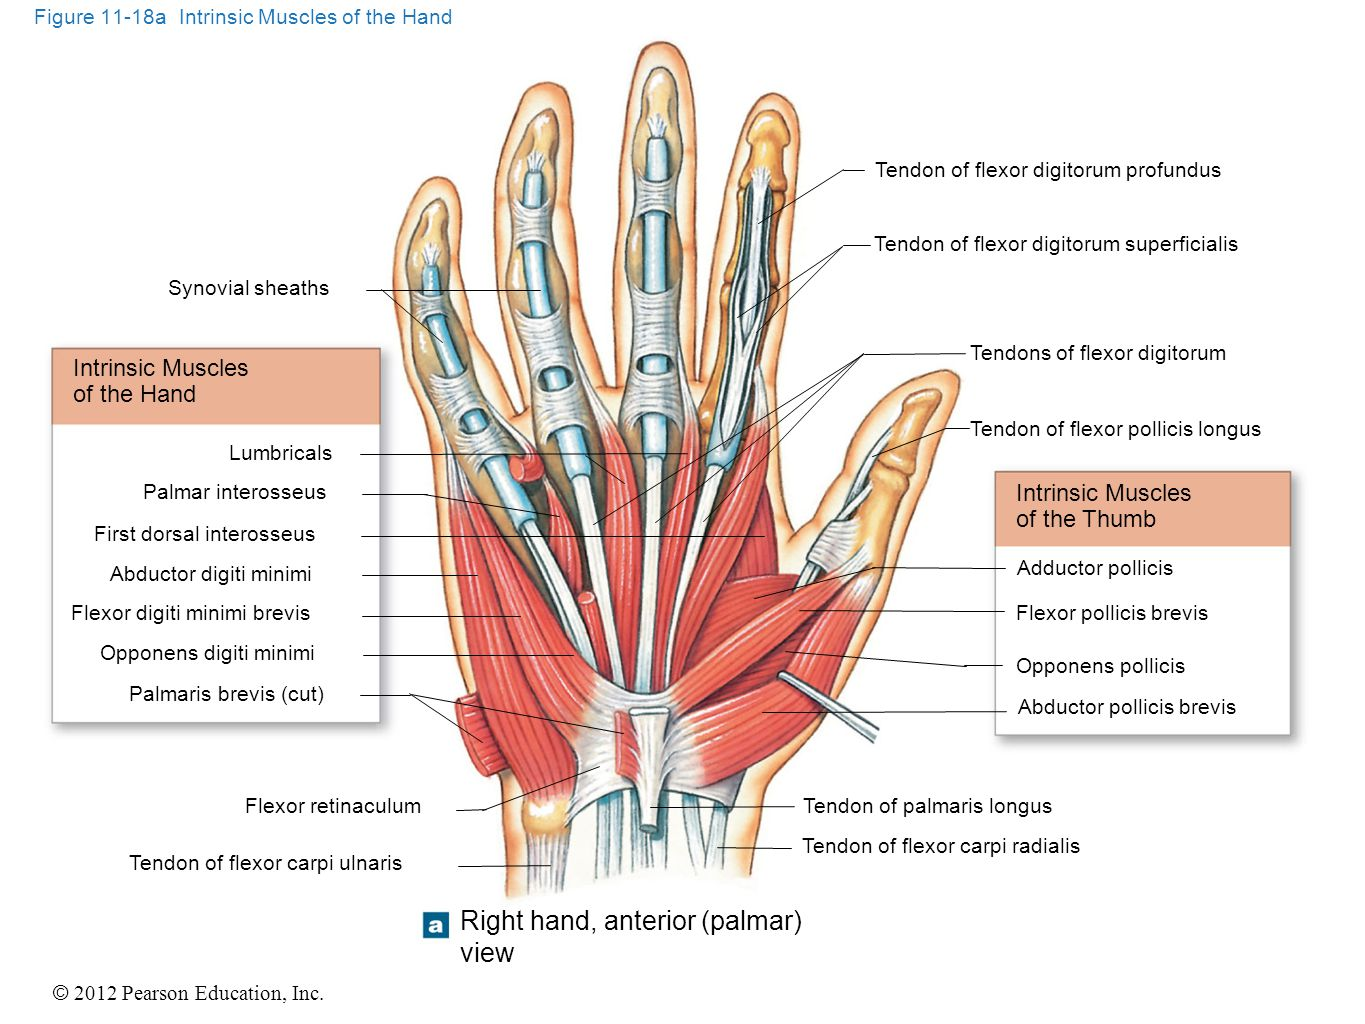 Figure 11-18a Intrinsic Muscles of the Hand